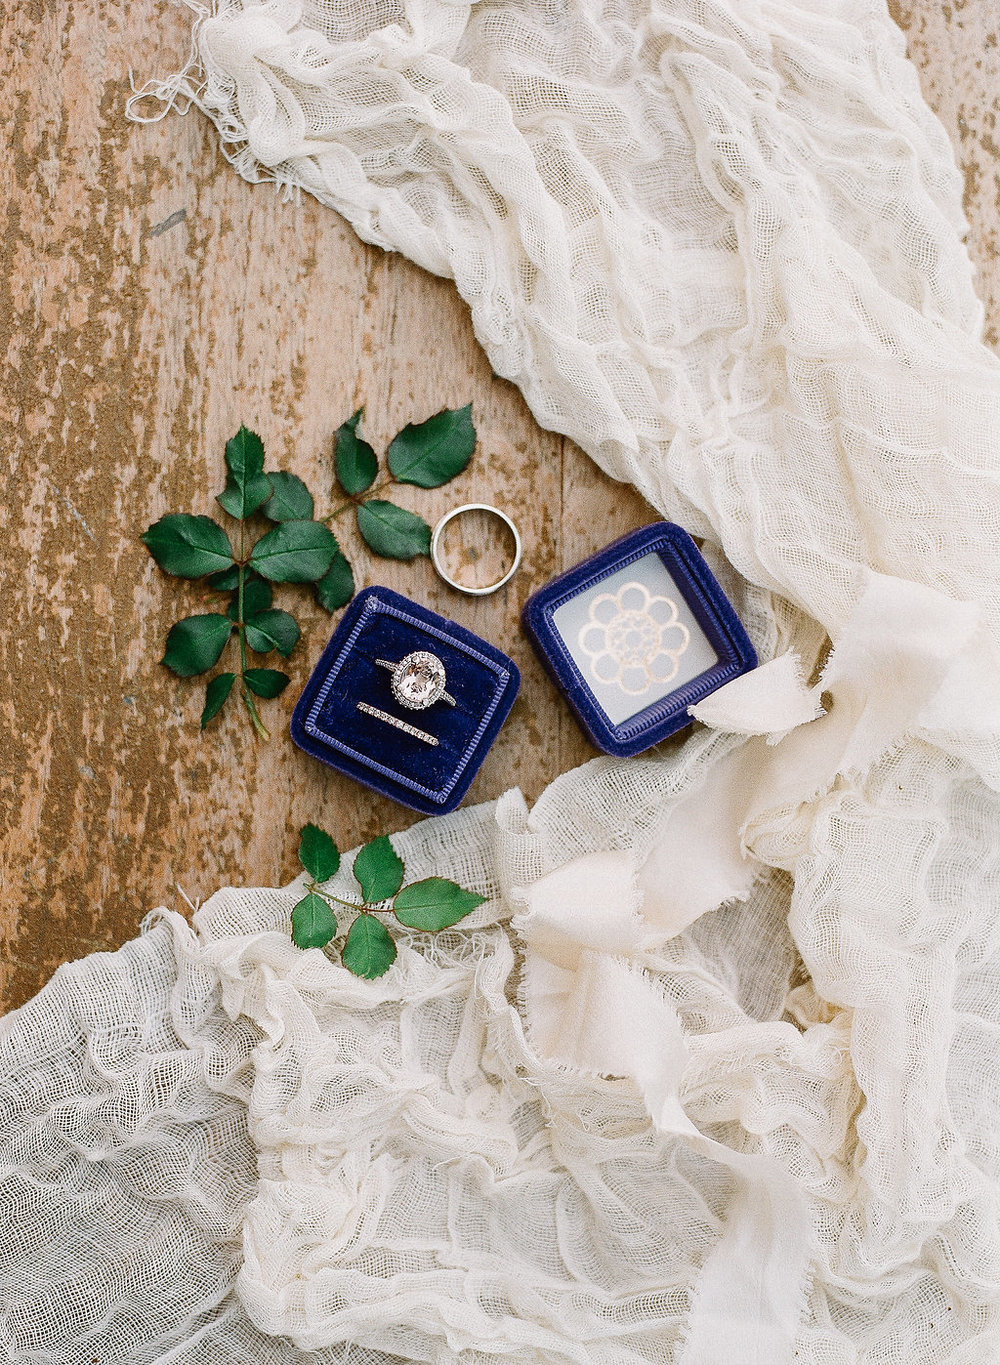 Blue ring box styled with elegant fabric and greens | Photographed by Allie Lindsey